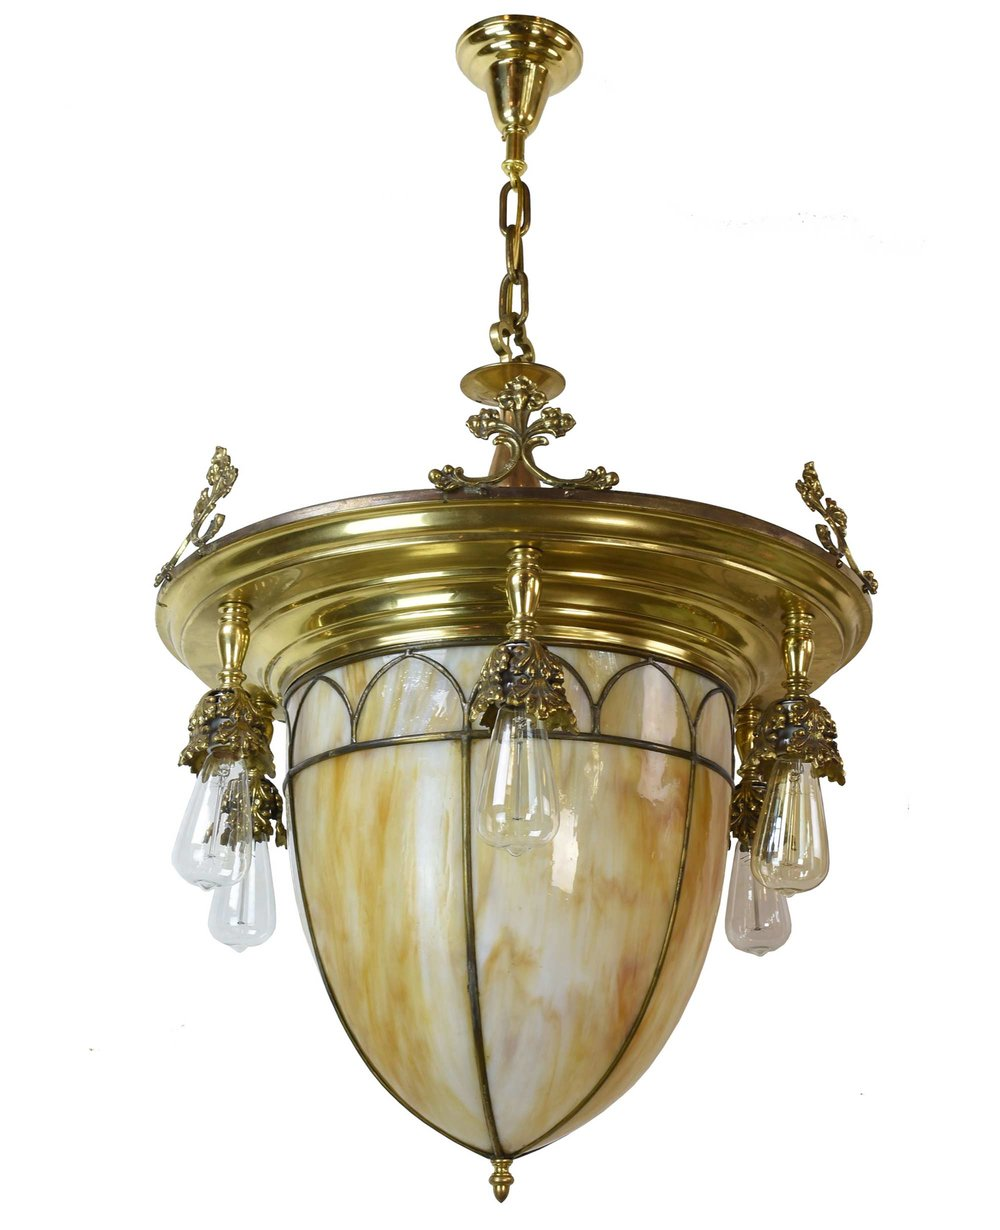 46609-6-light-brass-chandalier-with-slag-glass-shade-bulb-whole.jpg